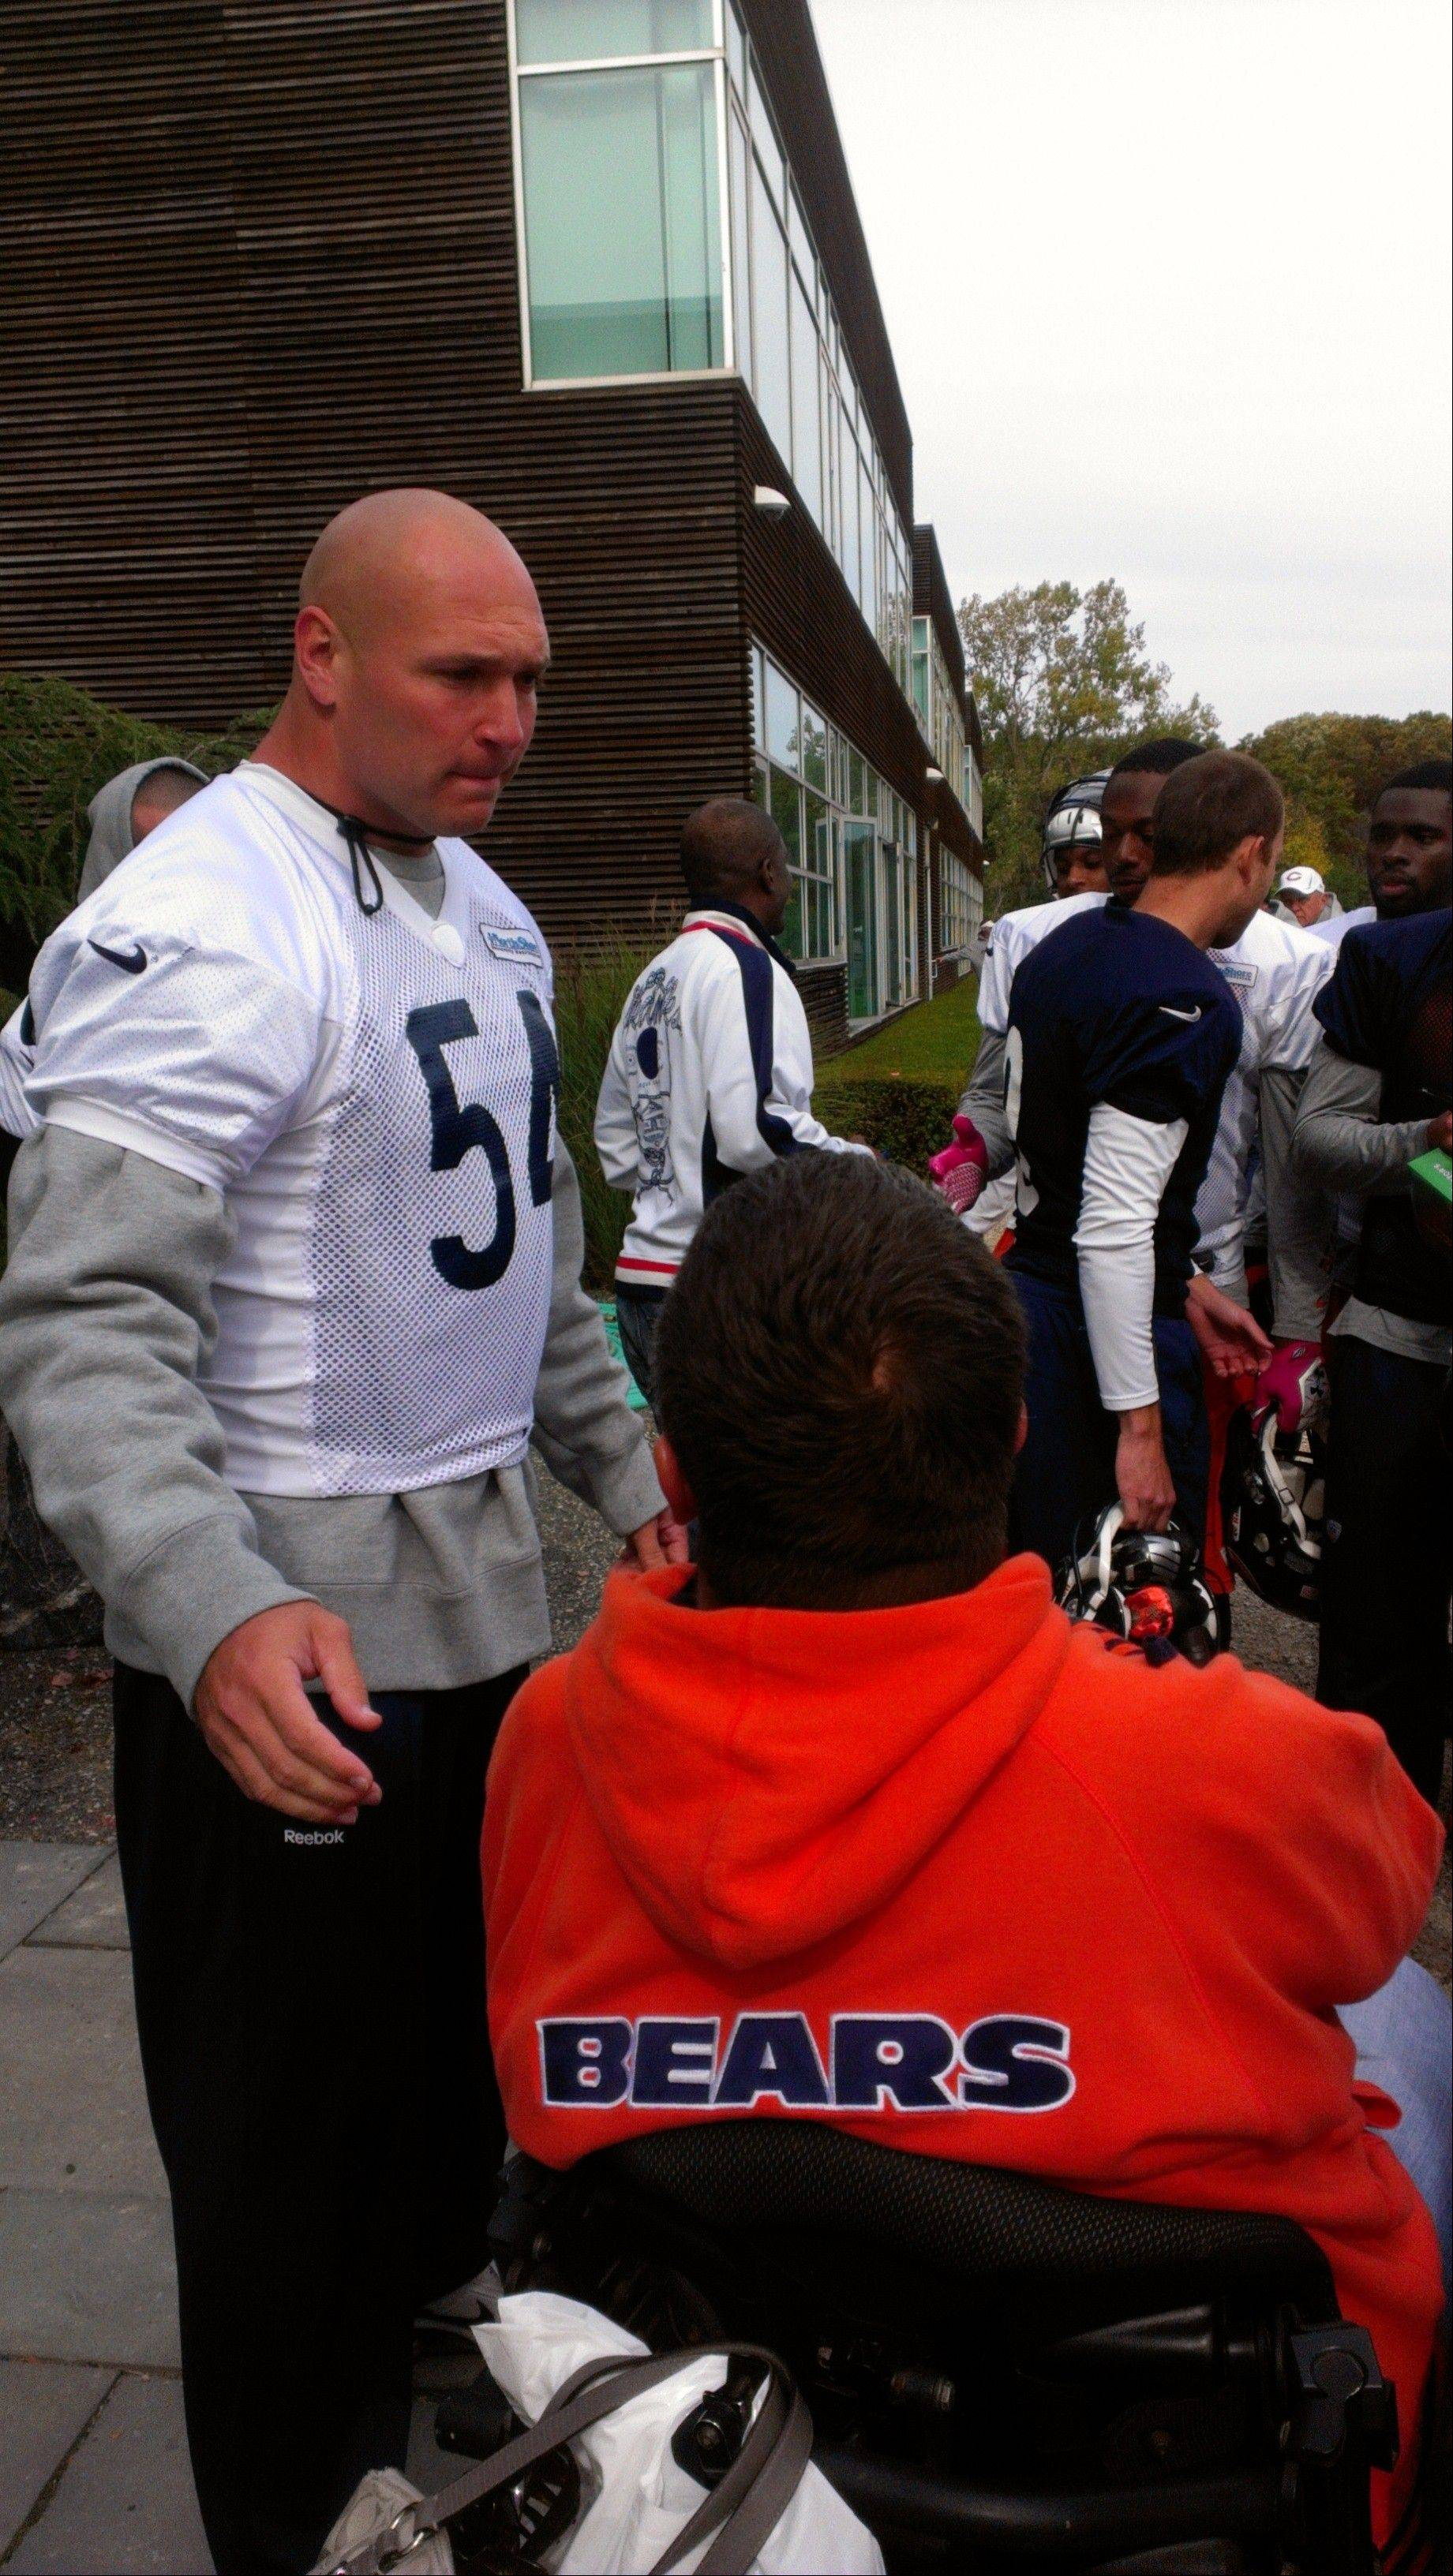 Meeting Bears linebacker Brian Urlacher, left, and seeing his support for athletes with catastrophic injuries spurred Arlington Heights resident Deborah Nelson, executive director of the Gridiron Alliance charity, to buy an Urlacher jersey for her 7-year-old son, Wyatt.